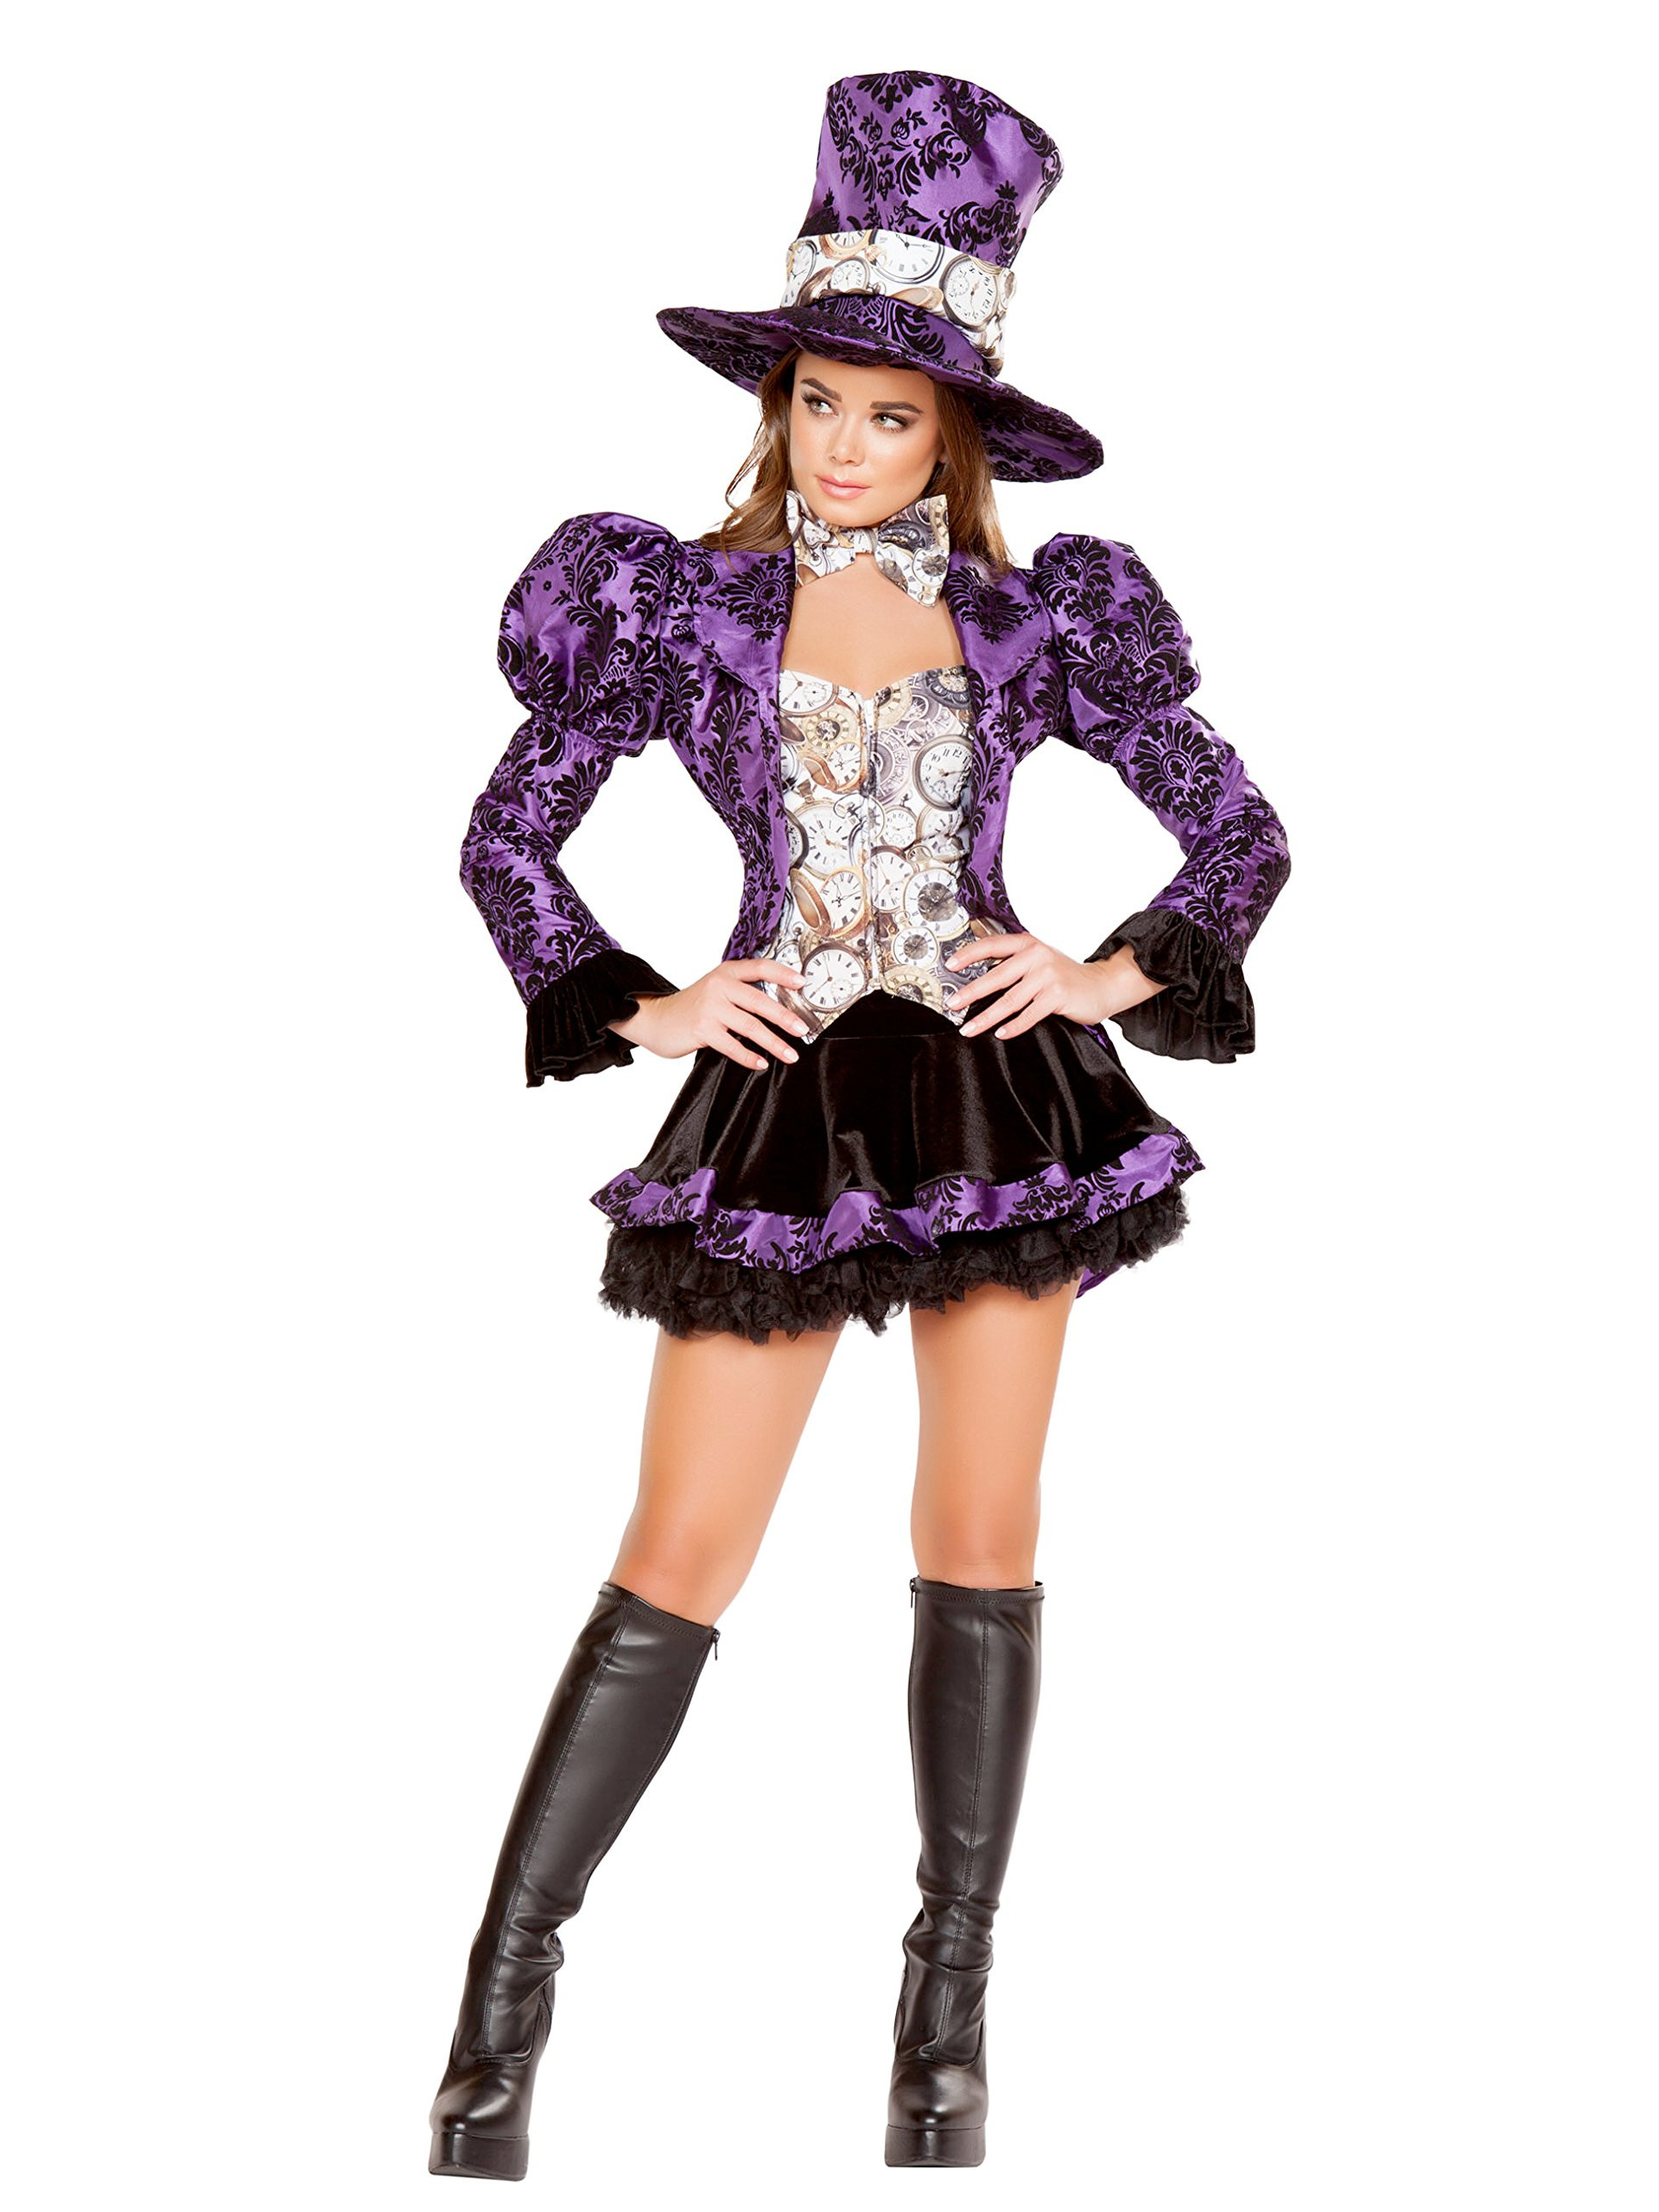 Mad Hatter Tea Party Costume Ideas  Tea Party Cutie Costume y Mad Hatter Costume Funtober